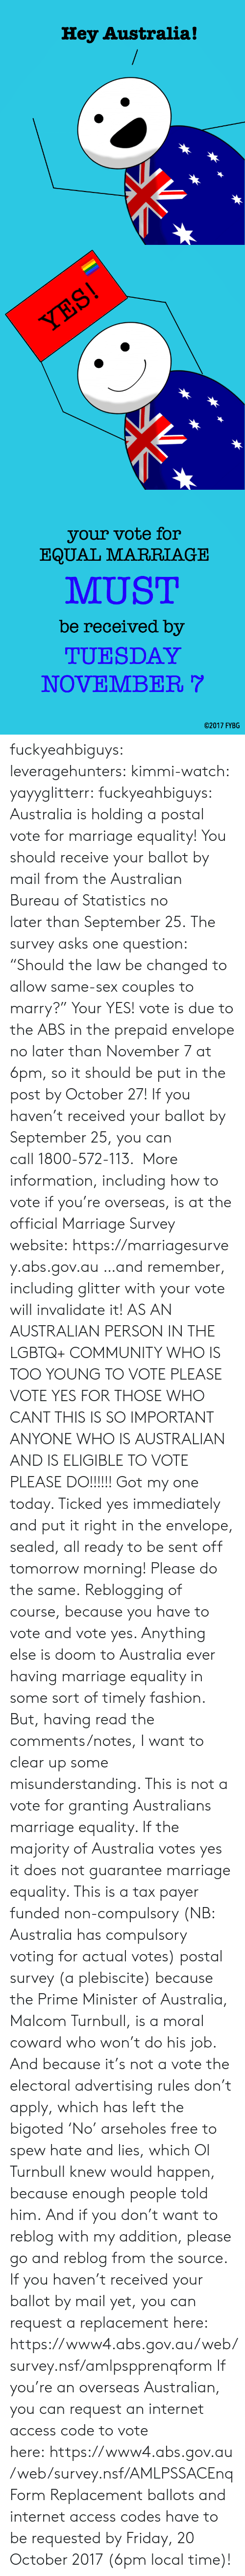 "nsf: Hey Australia!   your vote for  EQUAL MARRIAGE  MUST  be received by  TUESDAY  NOVEMBER  02017 FYBG fuckyeahbiguys:  leveragehunters:  kimmi-watch:  yayyglitterr:  fuckyeahbiguys:  Australia is holding a postal vote for marriage equality! You should receive your ballot by mail from the Australian Bureau of Statistics no later than September 25. The survey asks one question: ""Should the law be changed to allow same-sex couples to marry?"" Your YES! vote is due to the ABS in the prepaid envelope no later than November 7 at 6pm, so it should be put in the post by October 27! If you haven't received your ballot by September 25, you can call 1800-572-113.  More information, including how to vote if you're overseas, is at the official Marriage Survey website: https://marriagesurvey.abs.gov.au …and remember, including glitter with your vote will invalidate it!  AS AN AUSTRALIAN PERSON IN THE LGBTQ+ COMMUNITY WHO IS TOO YOUNG TO VOTE PLEASE VOTE YES FOR THOSE WHO CANT THIS IS SO IMPORTANT ANYONE WHO IS AUSTRALIAN AND IS ELIGIBLE TO VOTE PLEASE DO!!!!!!  Got my one today. Ticked yes immediately and put it right in the envelope, sealed, all ready to be sent off tomorrow morning! Please do the same.  Reblogging of course, because you have to vote and vote yes. Anything else is doom to Australia ever having marriage equality in some sort of timely fashion. But, having read the comments/notes, I want to clear up some misunderstanding. This is not a vote for granting Australians marriage equality. If the majority of Australia votes yes it does not guarantee marriage equality. This is a tax payer funded non-compulsory (NB: Australia has compulsory voting for actual votes) postal survey (a plebiscite) because the Prime Minister of Australia, Malcom Turnbull, is a moral coward who won't do his job. And because it's not a vote the electoral advertising rules don't apply, which has left the bigoted 'No' arseholes free to spew hate and lies, which Ol Turnbull knew would happen, because enough people told him. And if you don't want to reblog with my addition, please go and reblog from the source.  If you haven't received your ballot by mail yet, you can request a replacement here: https://www4.abs.gov.au/web/survey.nsf/amlpspprenqform If you're an overseas Australian, you can request an internet access code to vote here: https://www4.abs.gov.au/web/survey.nsf/AMLPSSACEnqForm Replacement ballots and internet access codes have to be requested by Friday, 20 October 2017 (6pm local time)!"